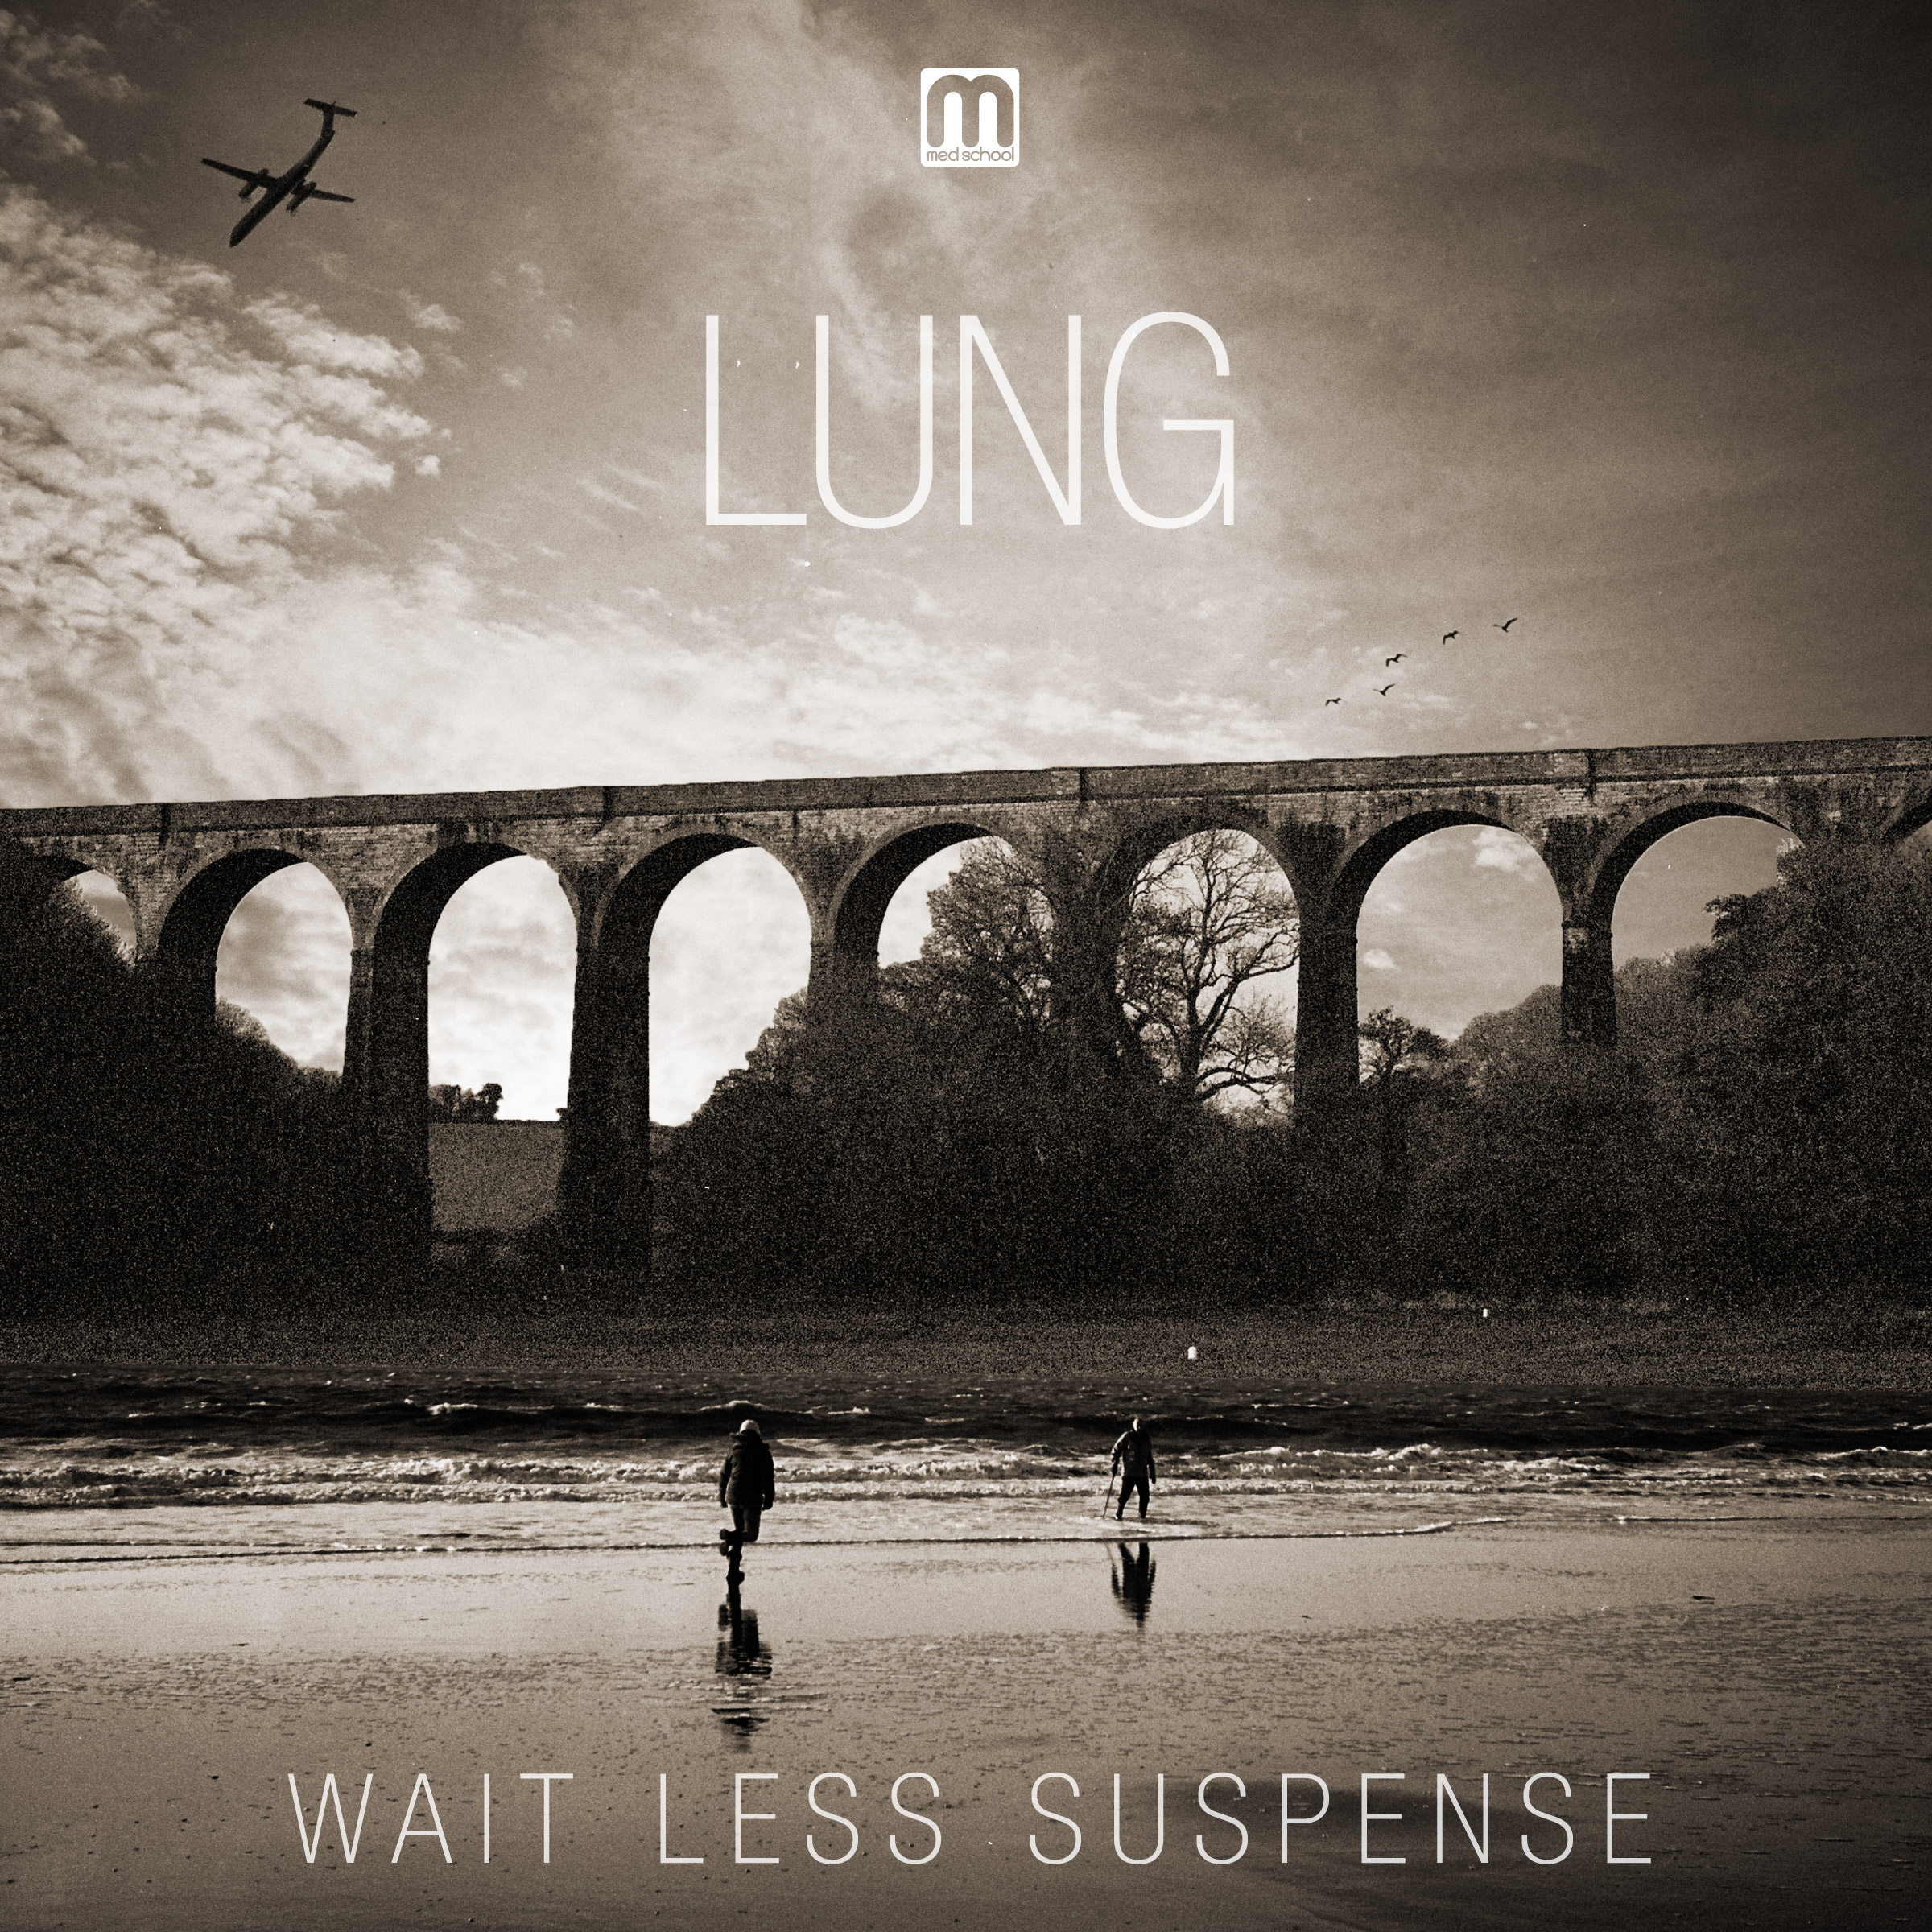 Lung/WAIT LESS SUSPENSE LP + CD